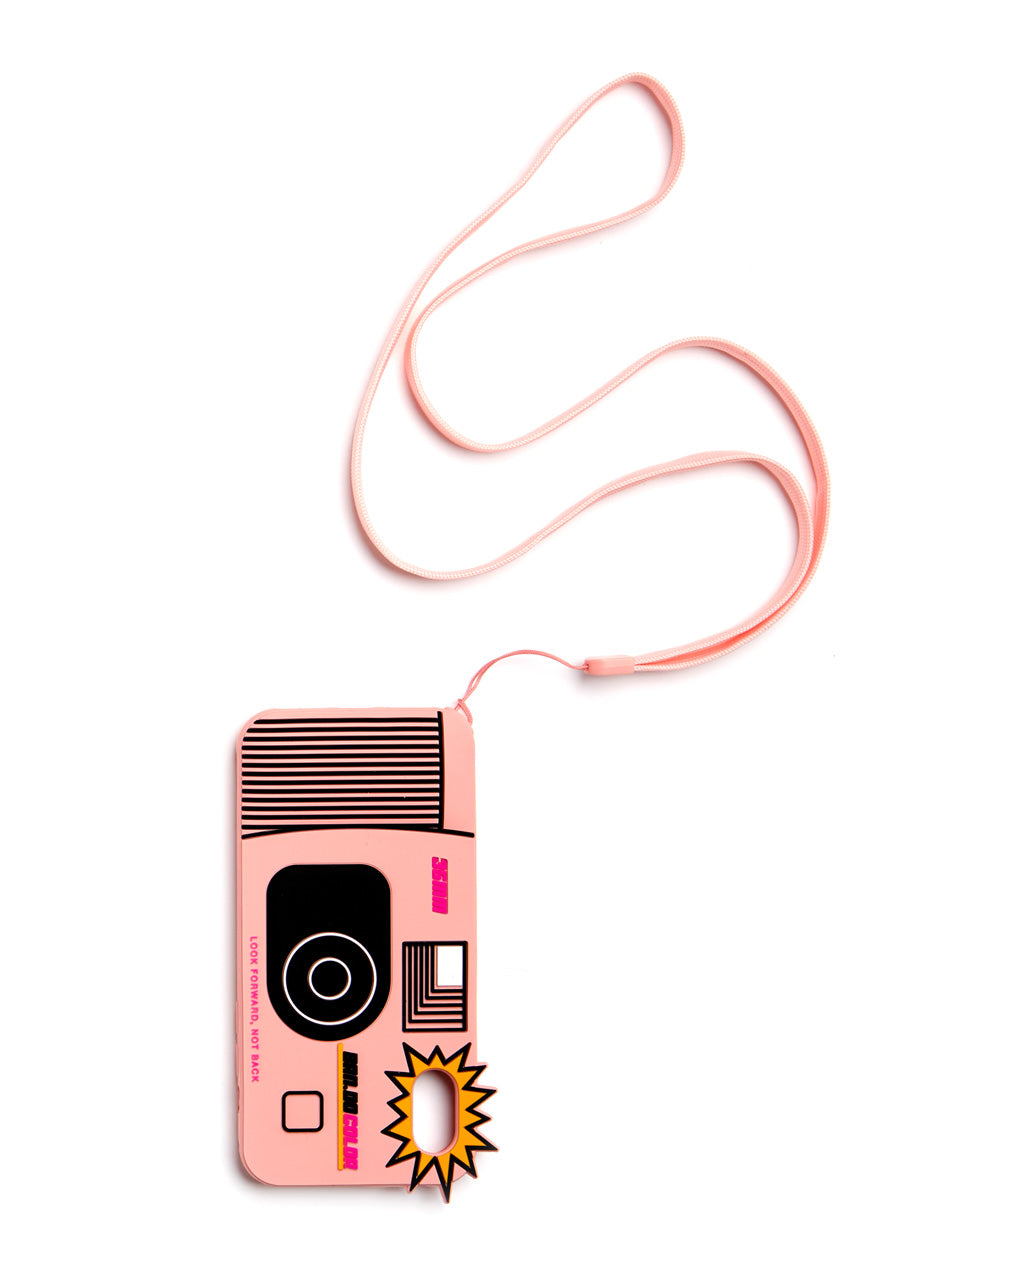 long pink strap attached to an iphone case shaped like a disposable camera